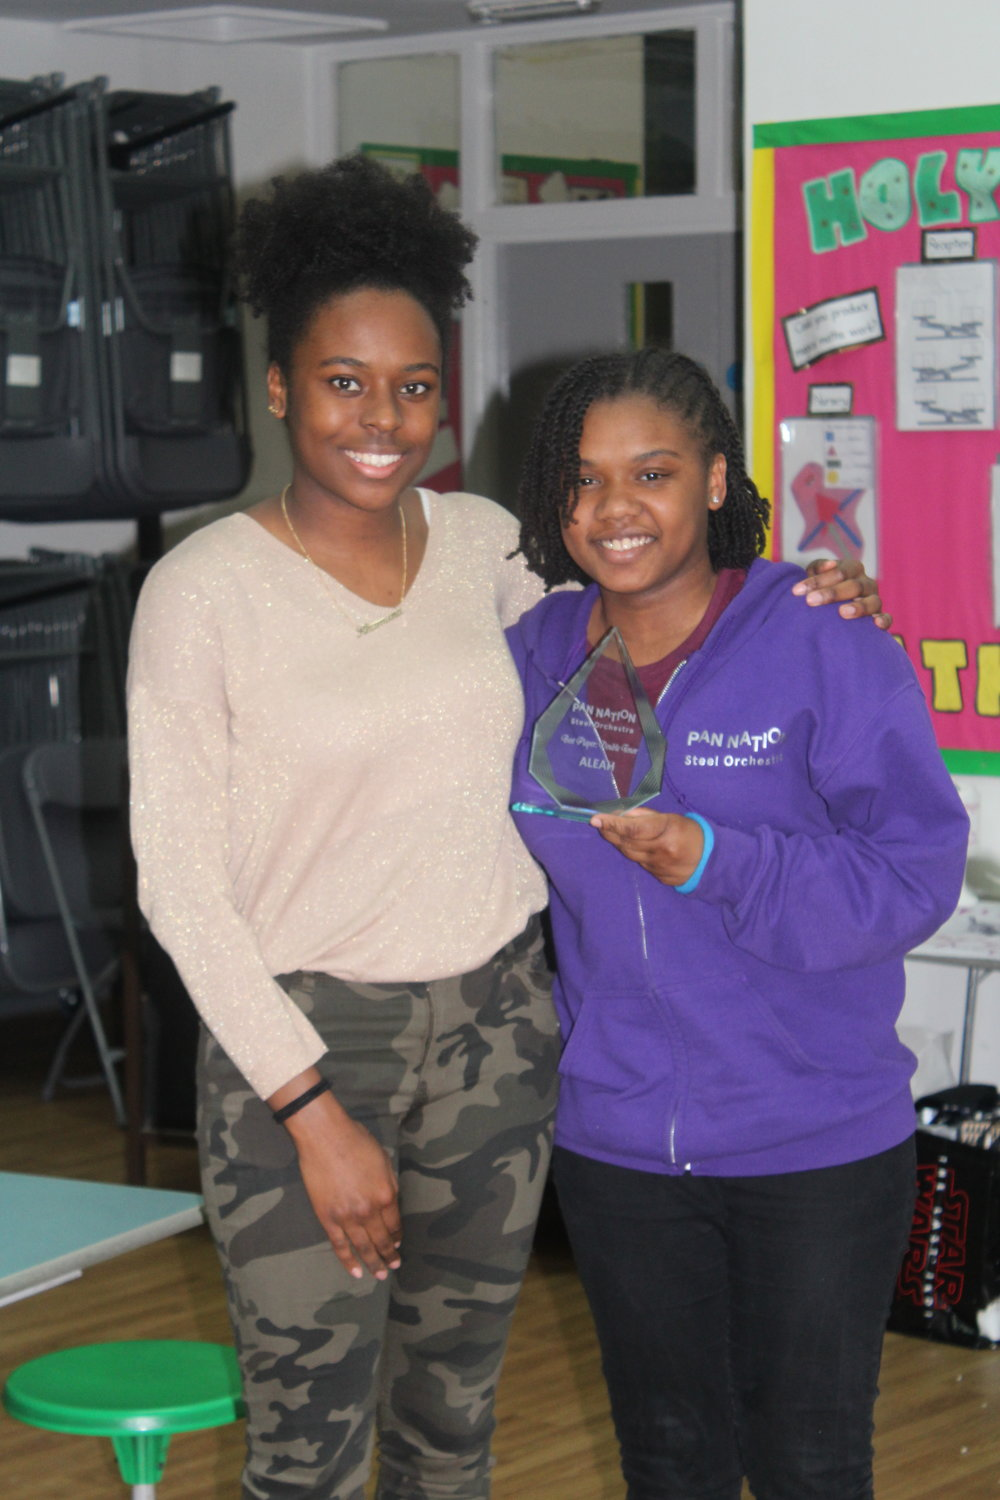 Aleah receiving her award from Rhamana, one of the vice-captains